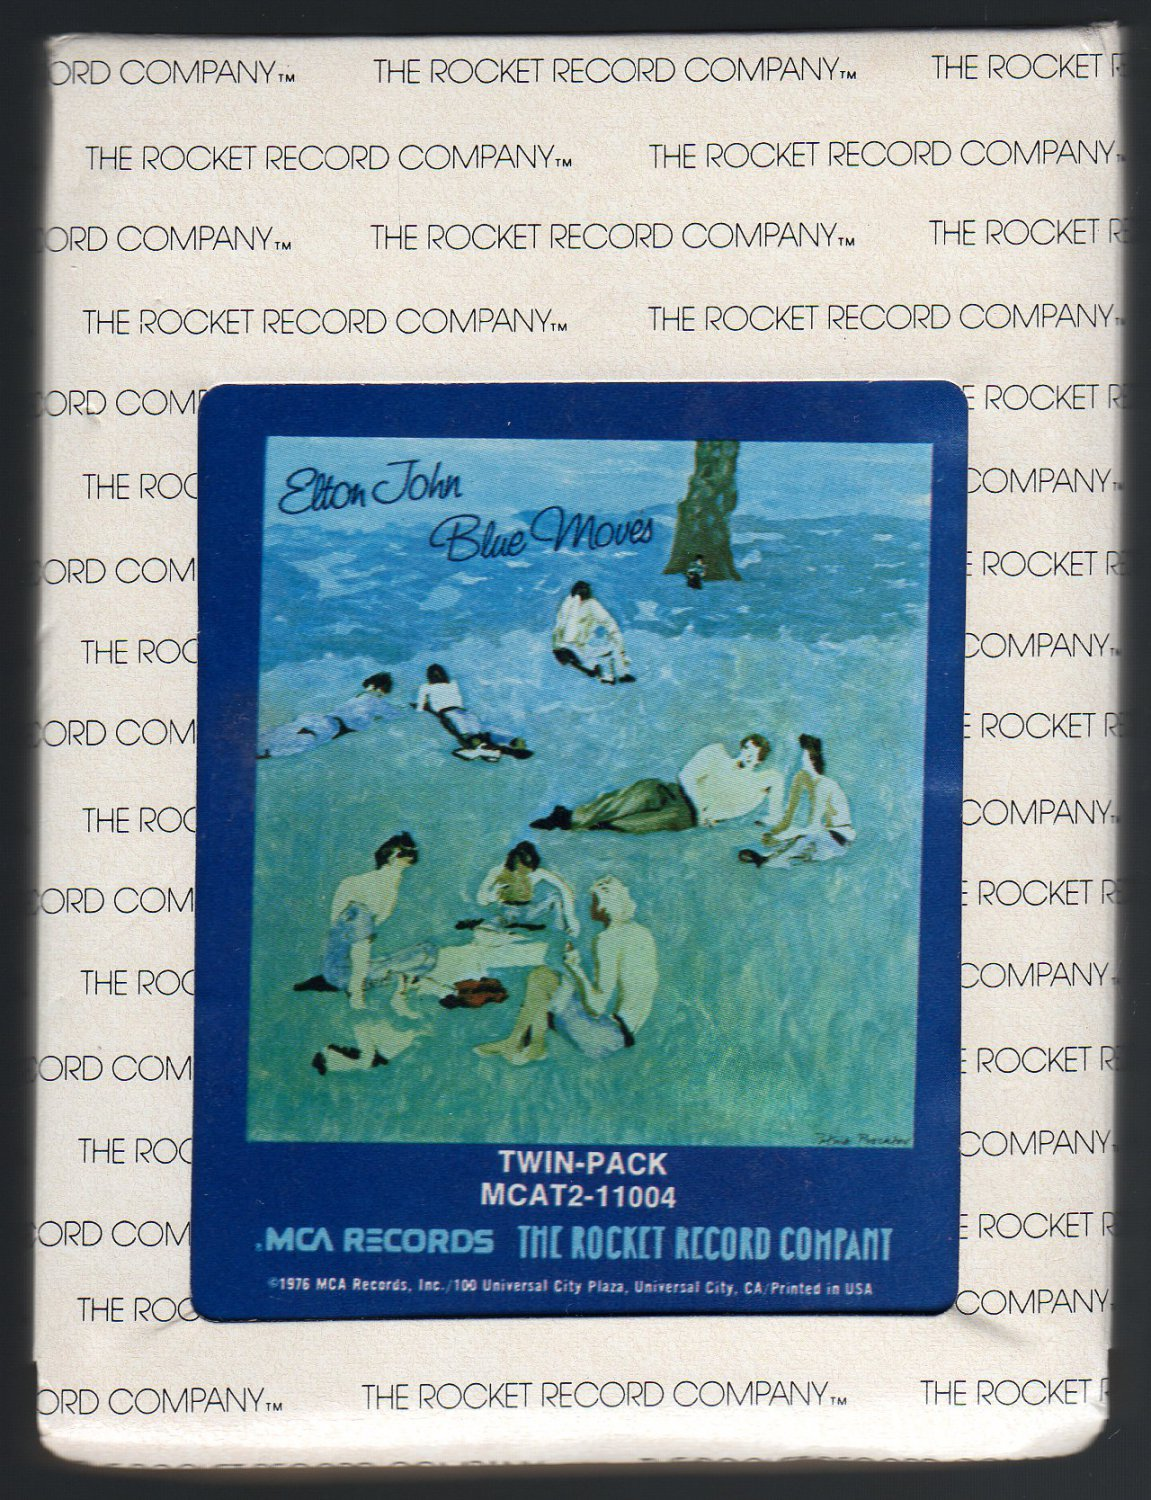 Elton John - Blue Moves 1976 ROCKET MCA A28 8-TRACK TAPE